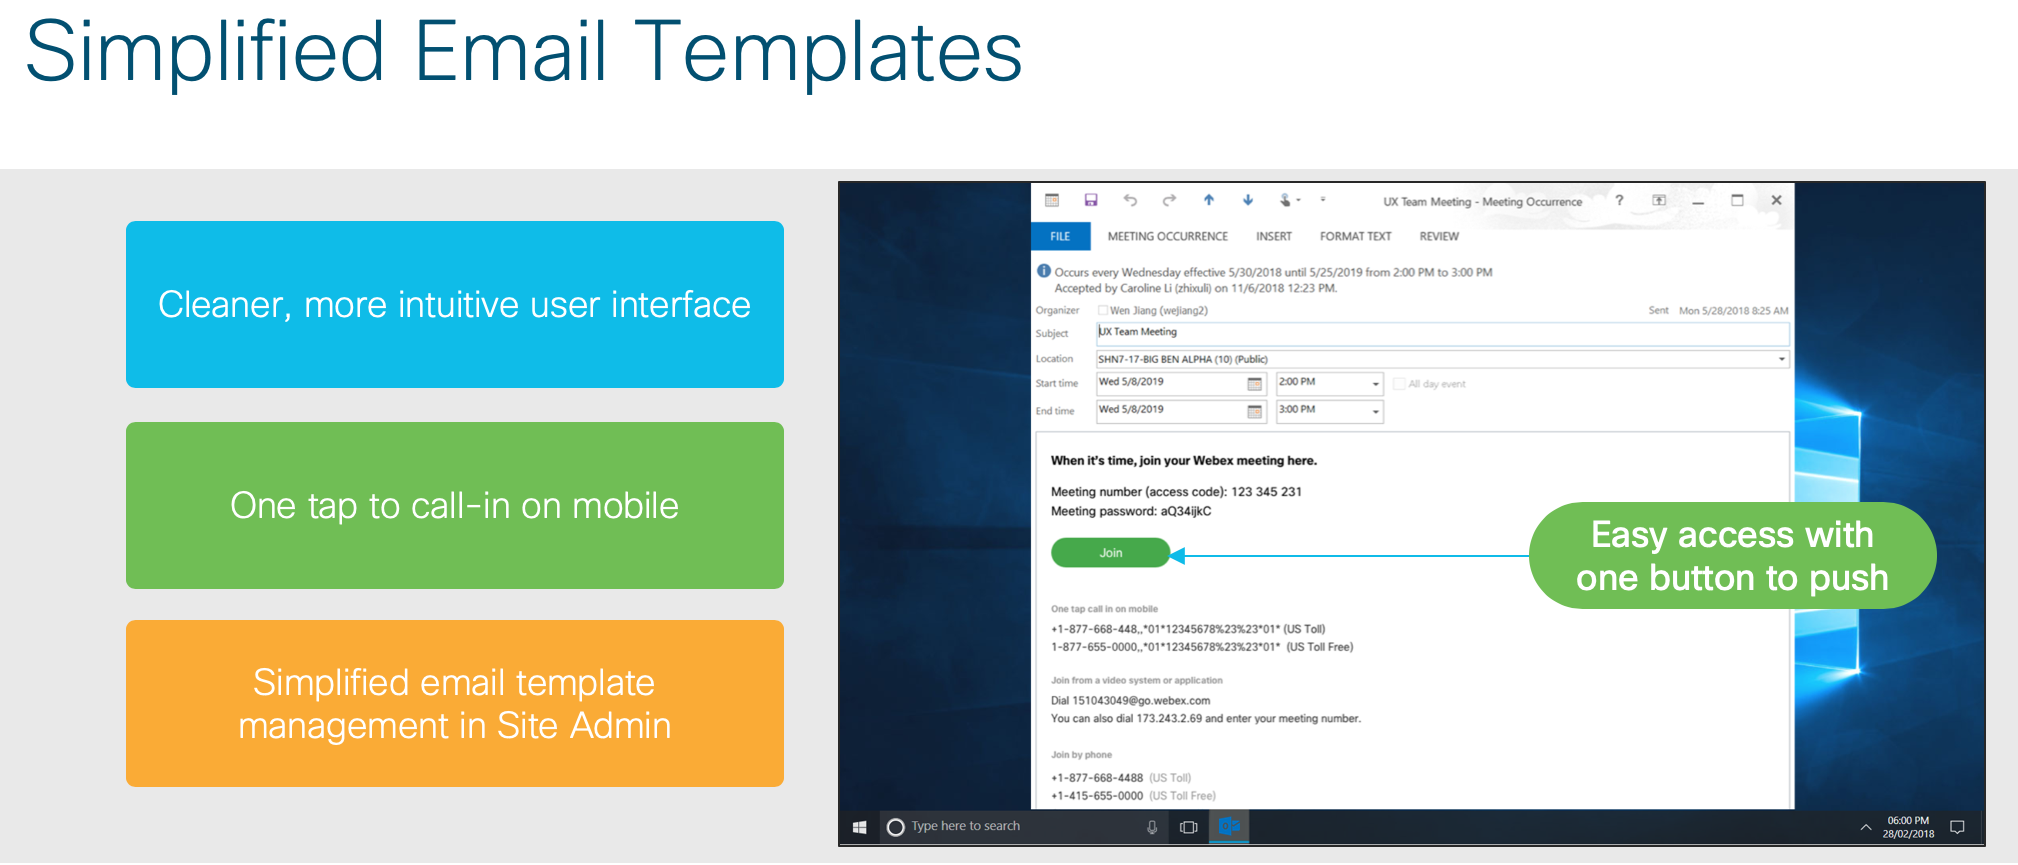 Simplified Email Templates